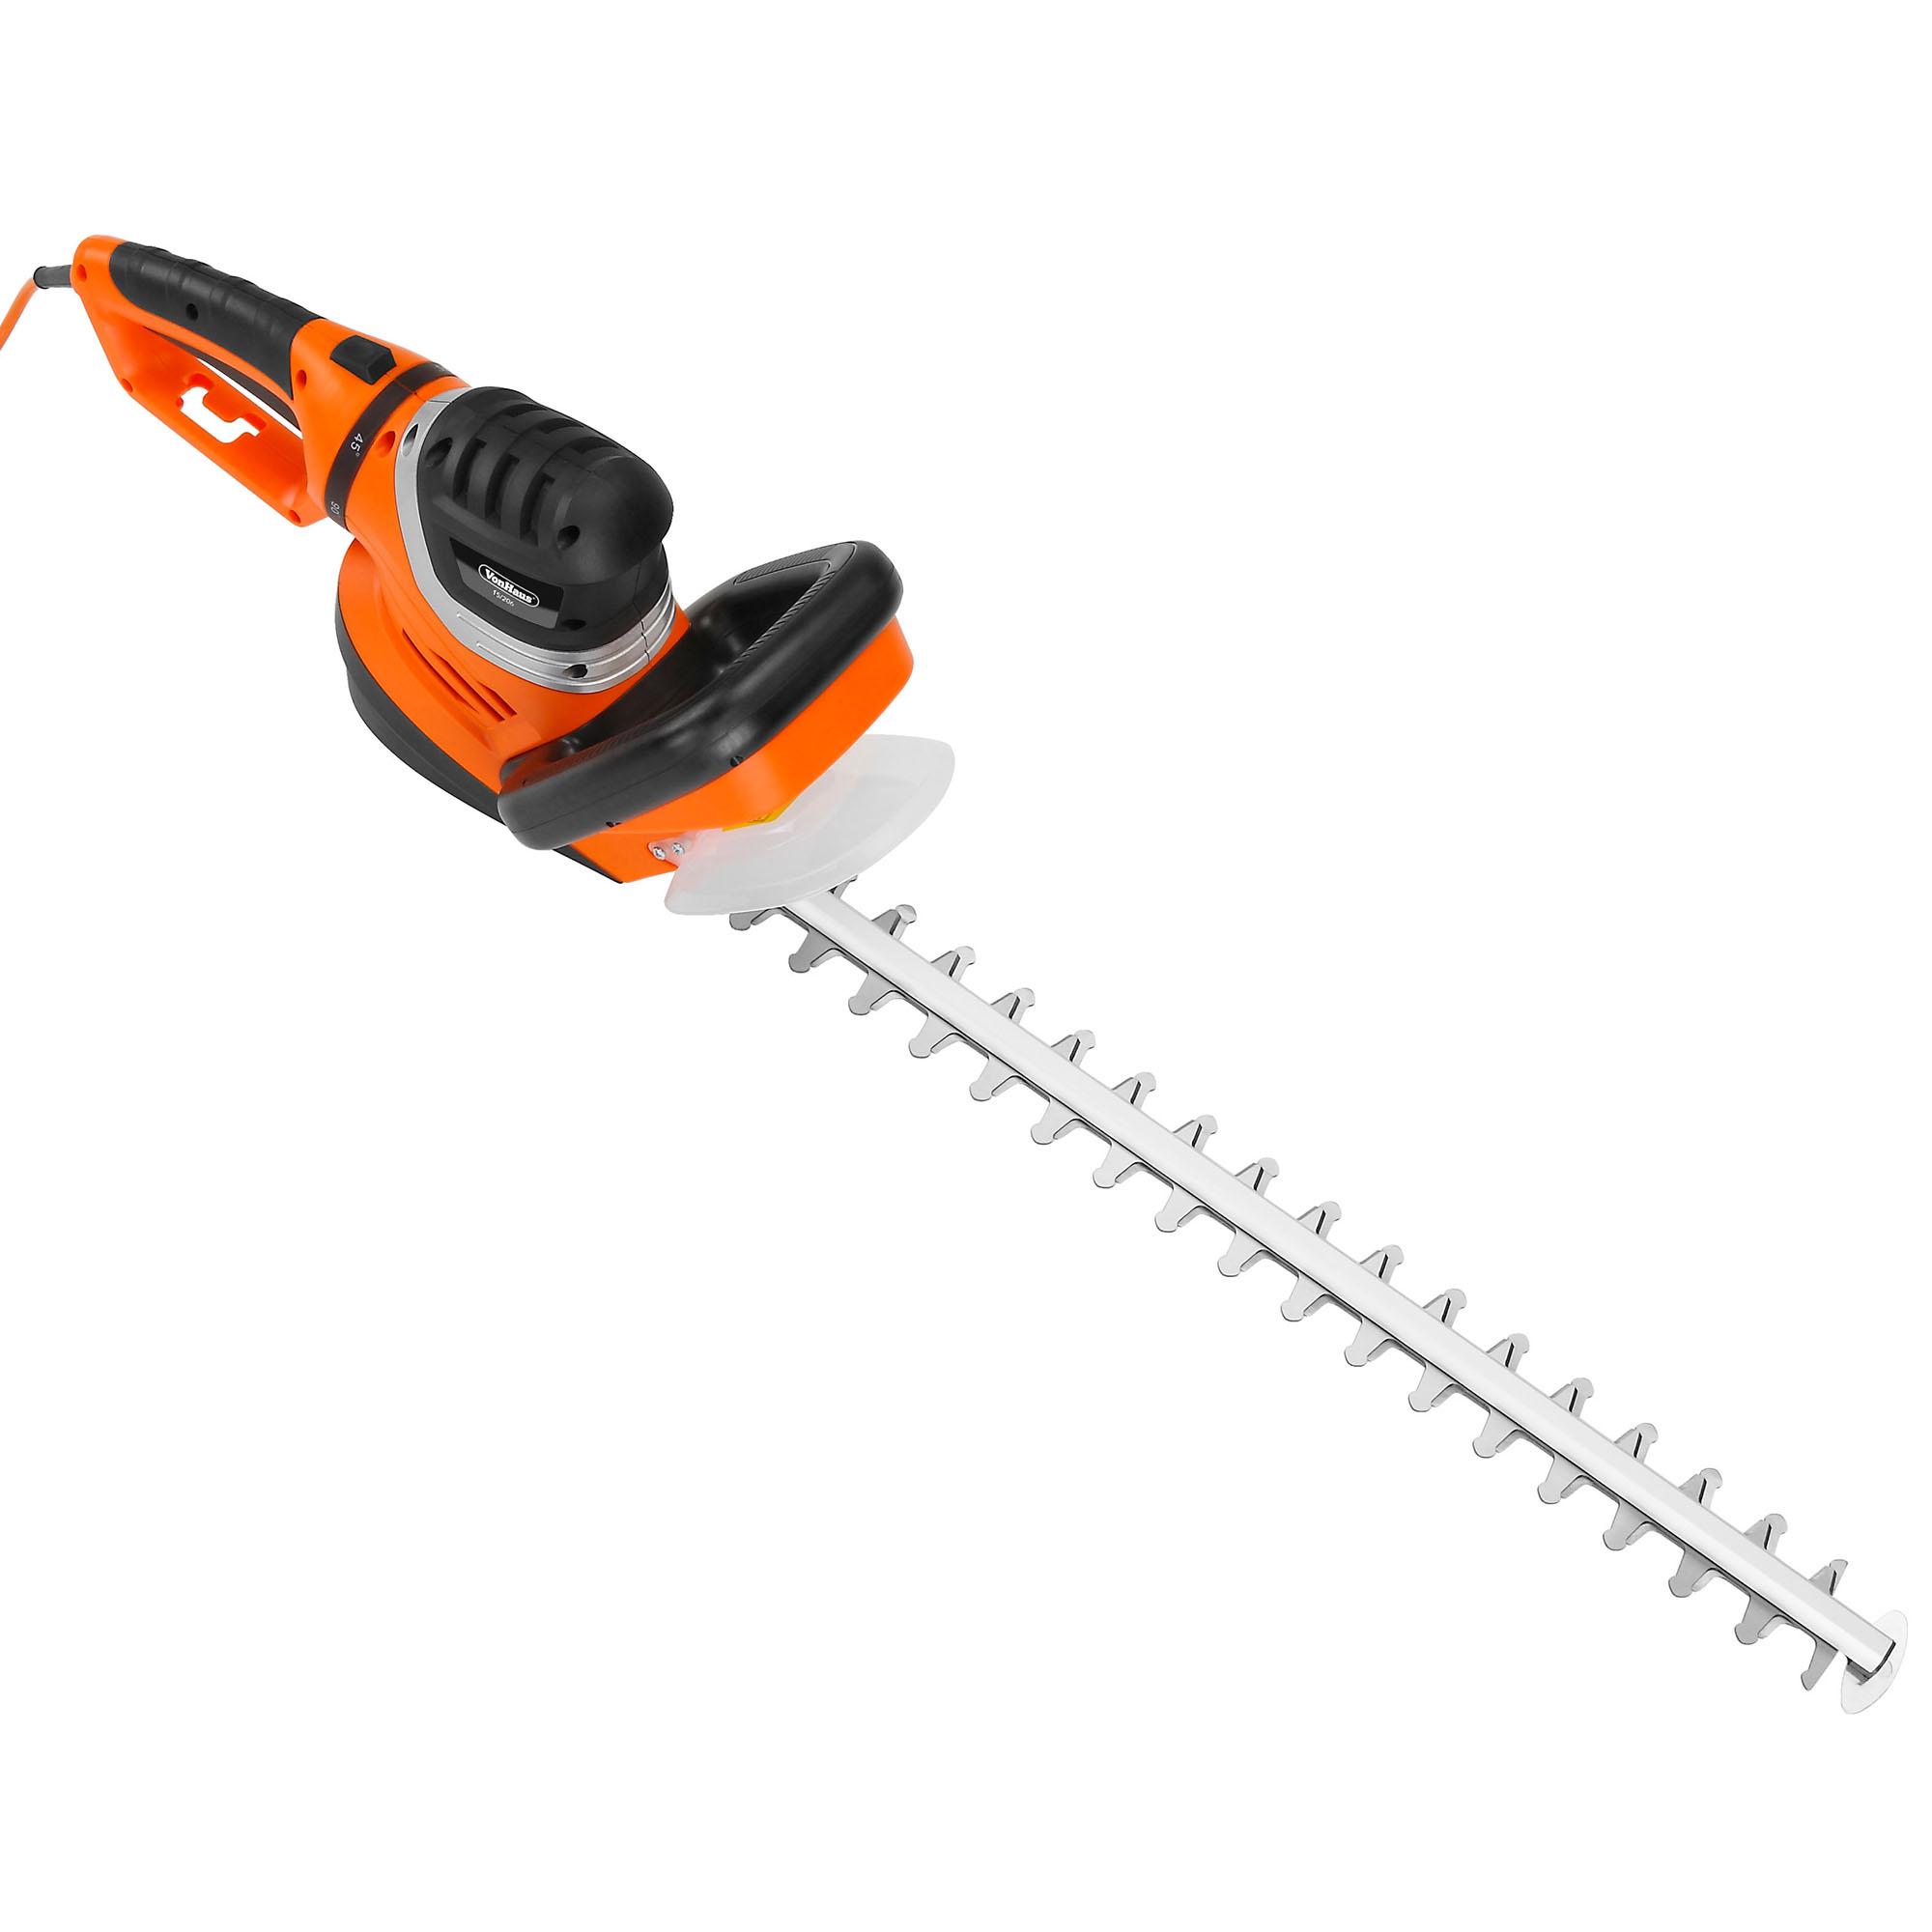 Electric Hedge Trimmer eBay